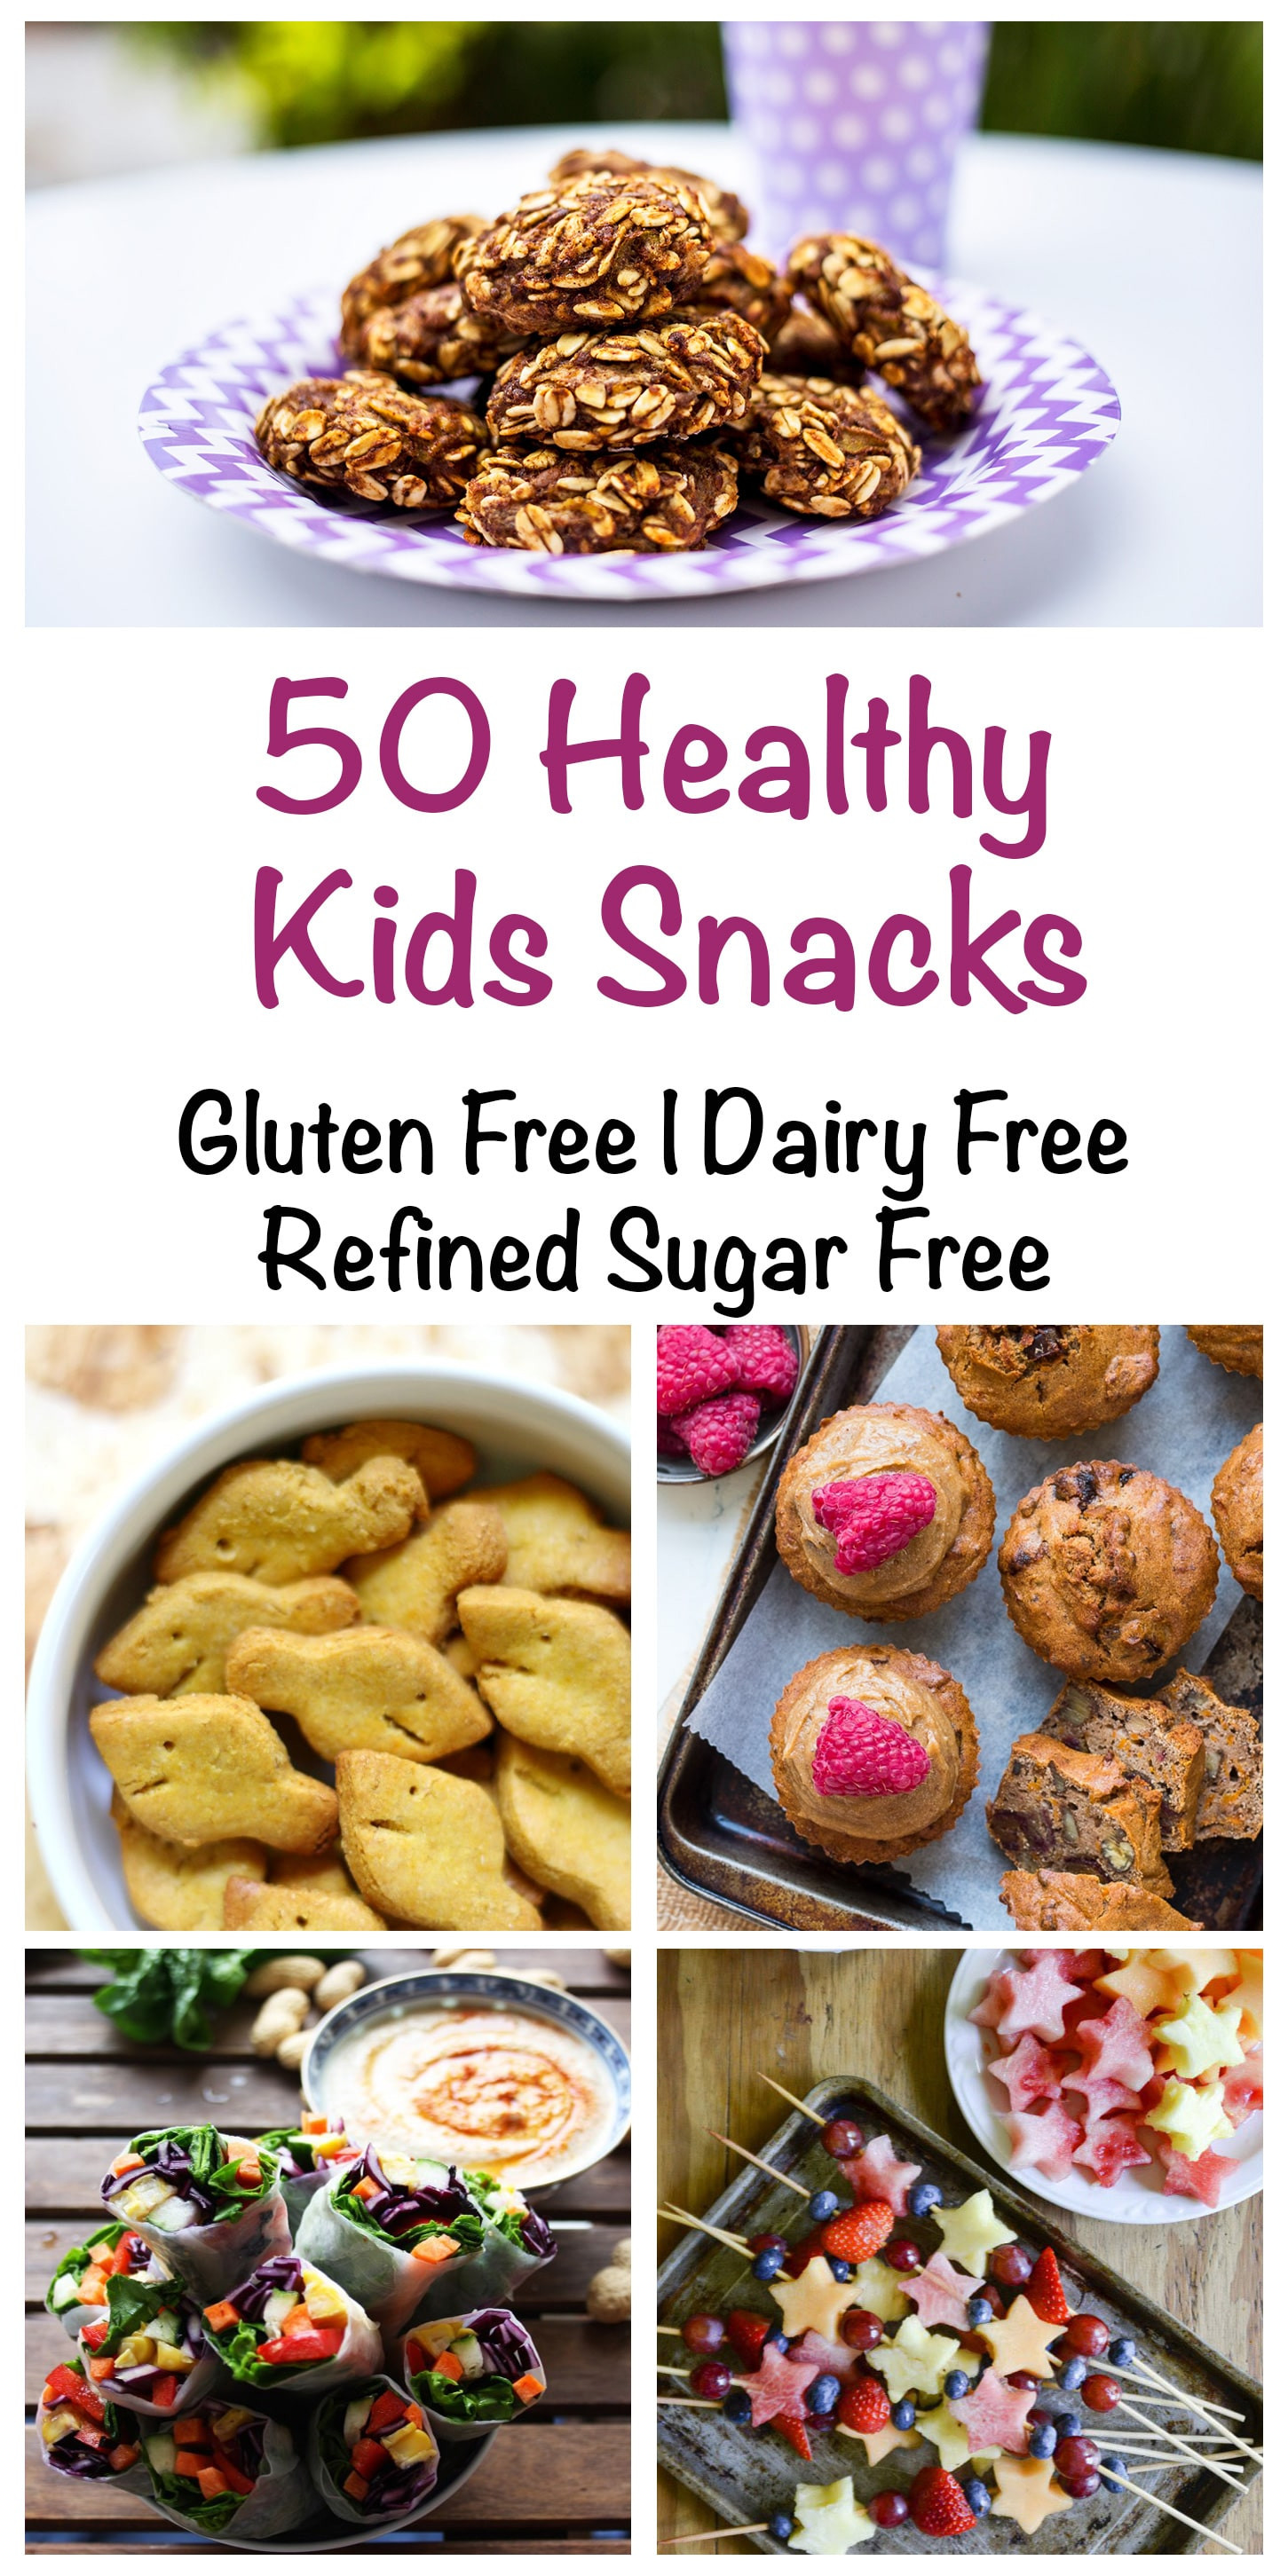 Healthy Sugar Free Snacks  50 Healthy Snacks for Kids Gluten Free Dairy Free